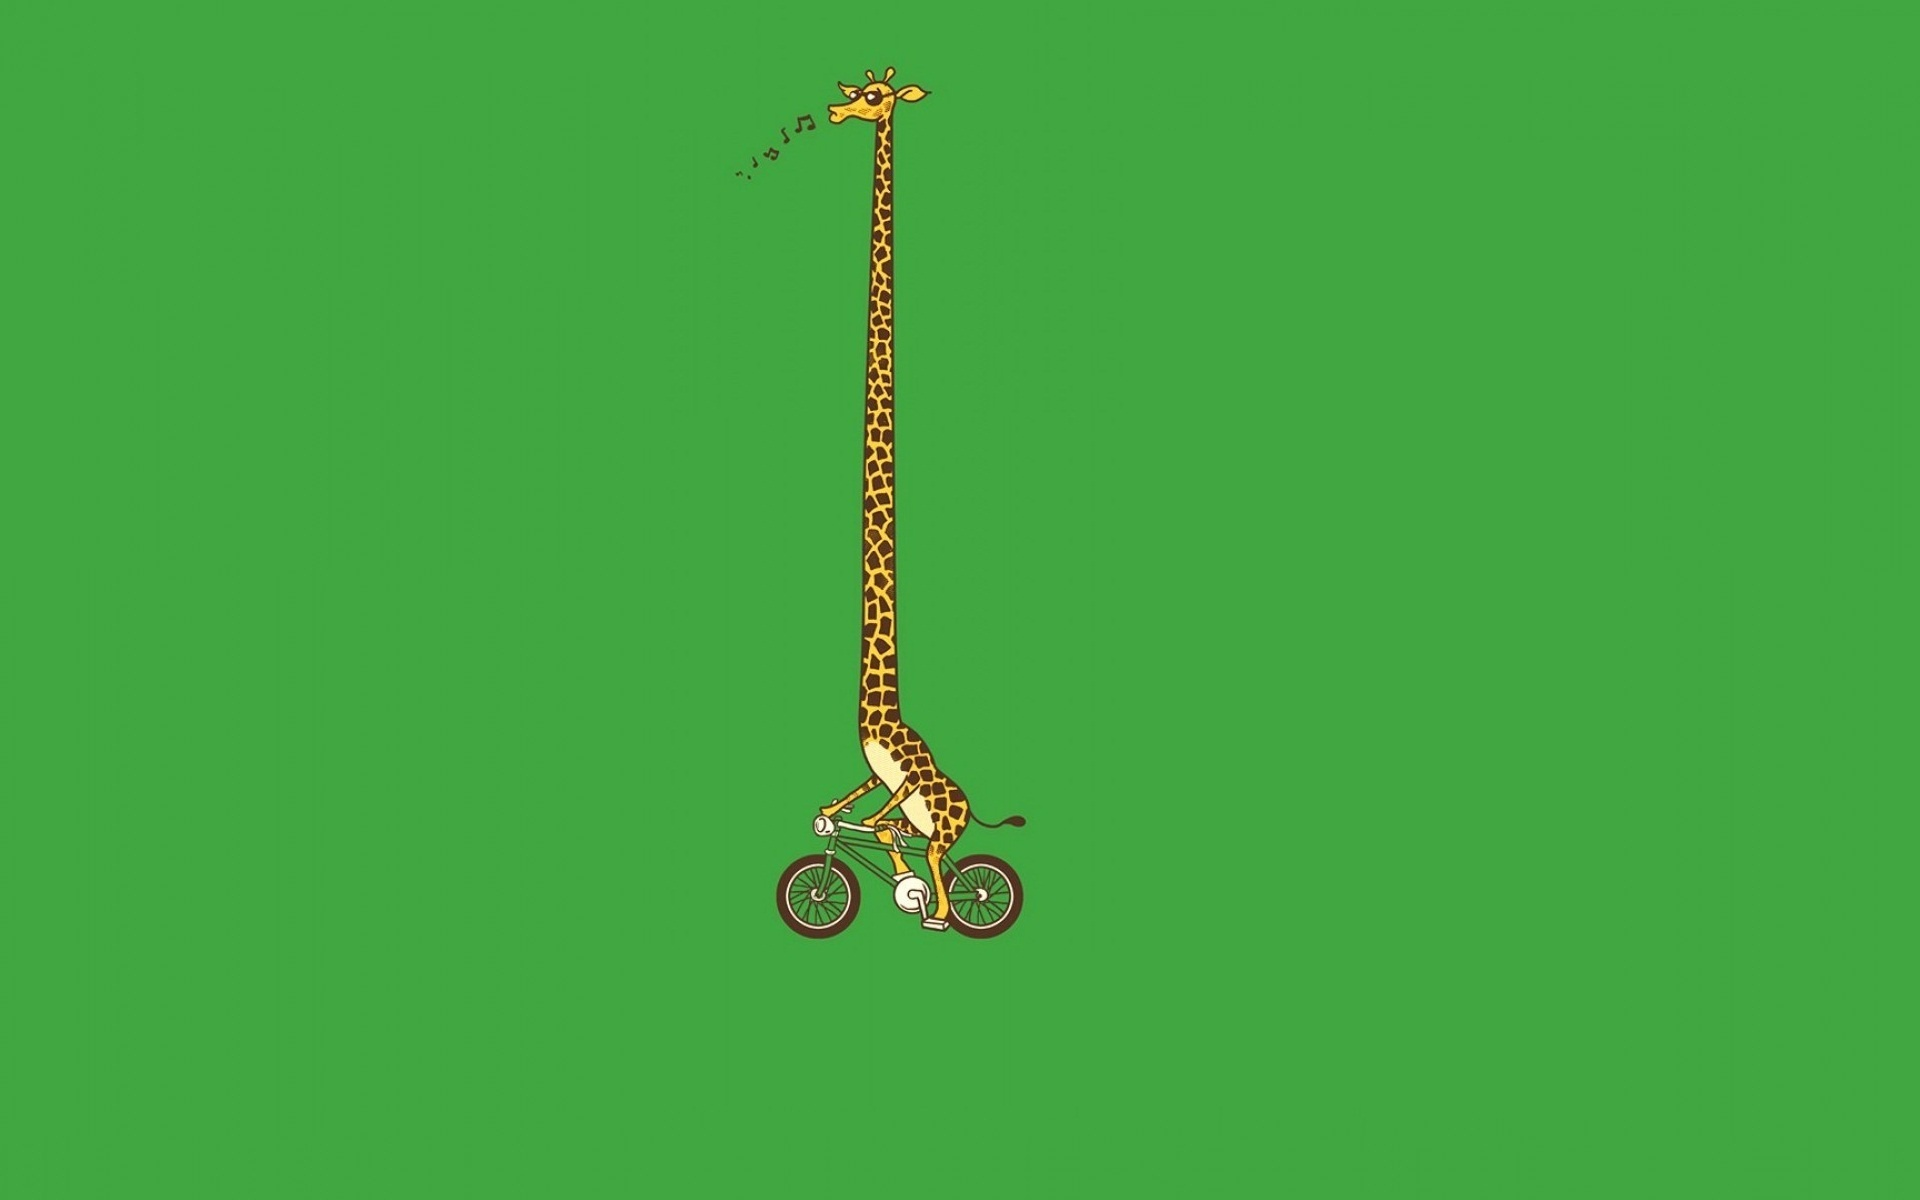 Giraffe Bike Art Funny